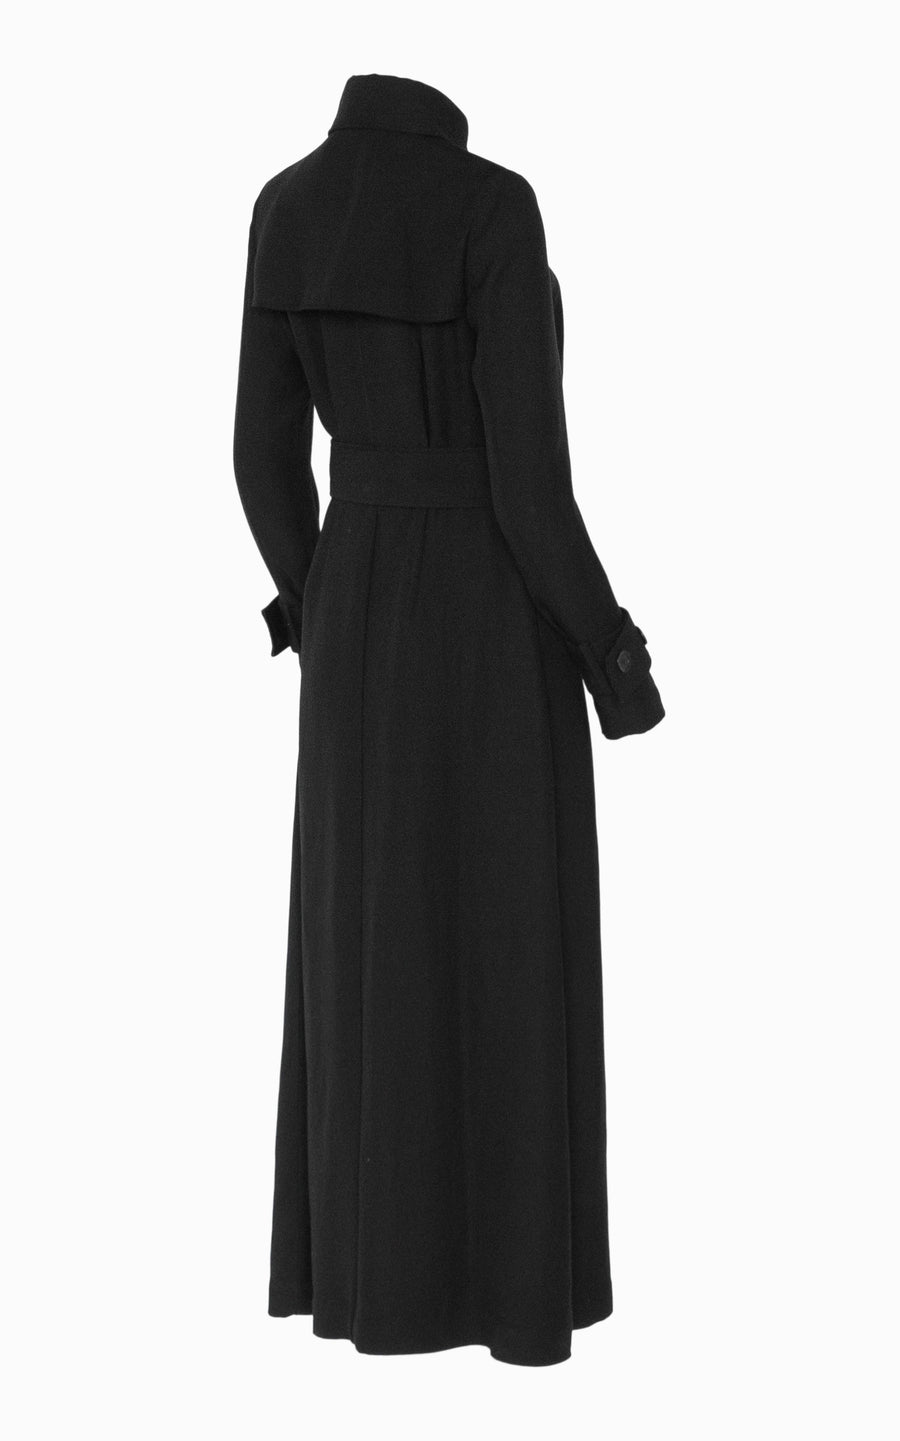 Marple Dress Coat | Black